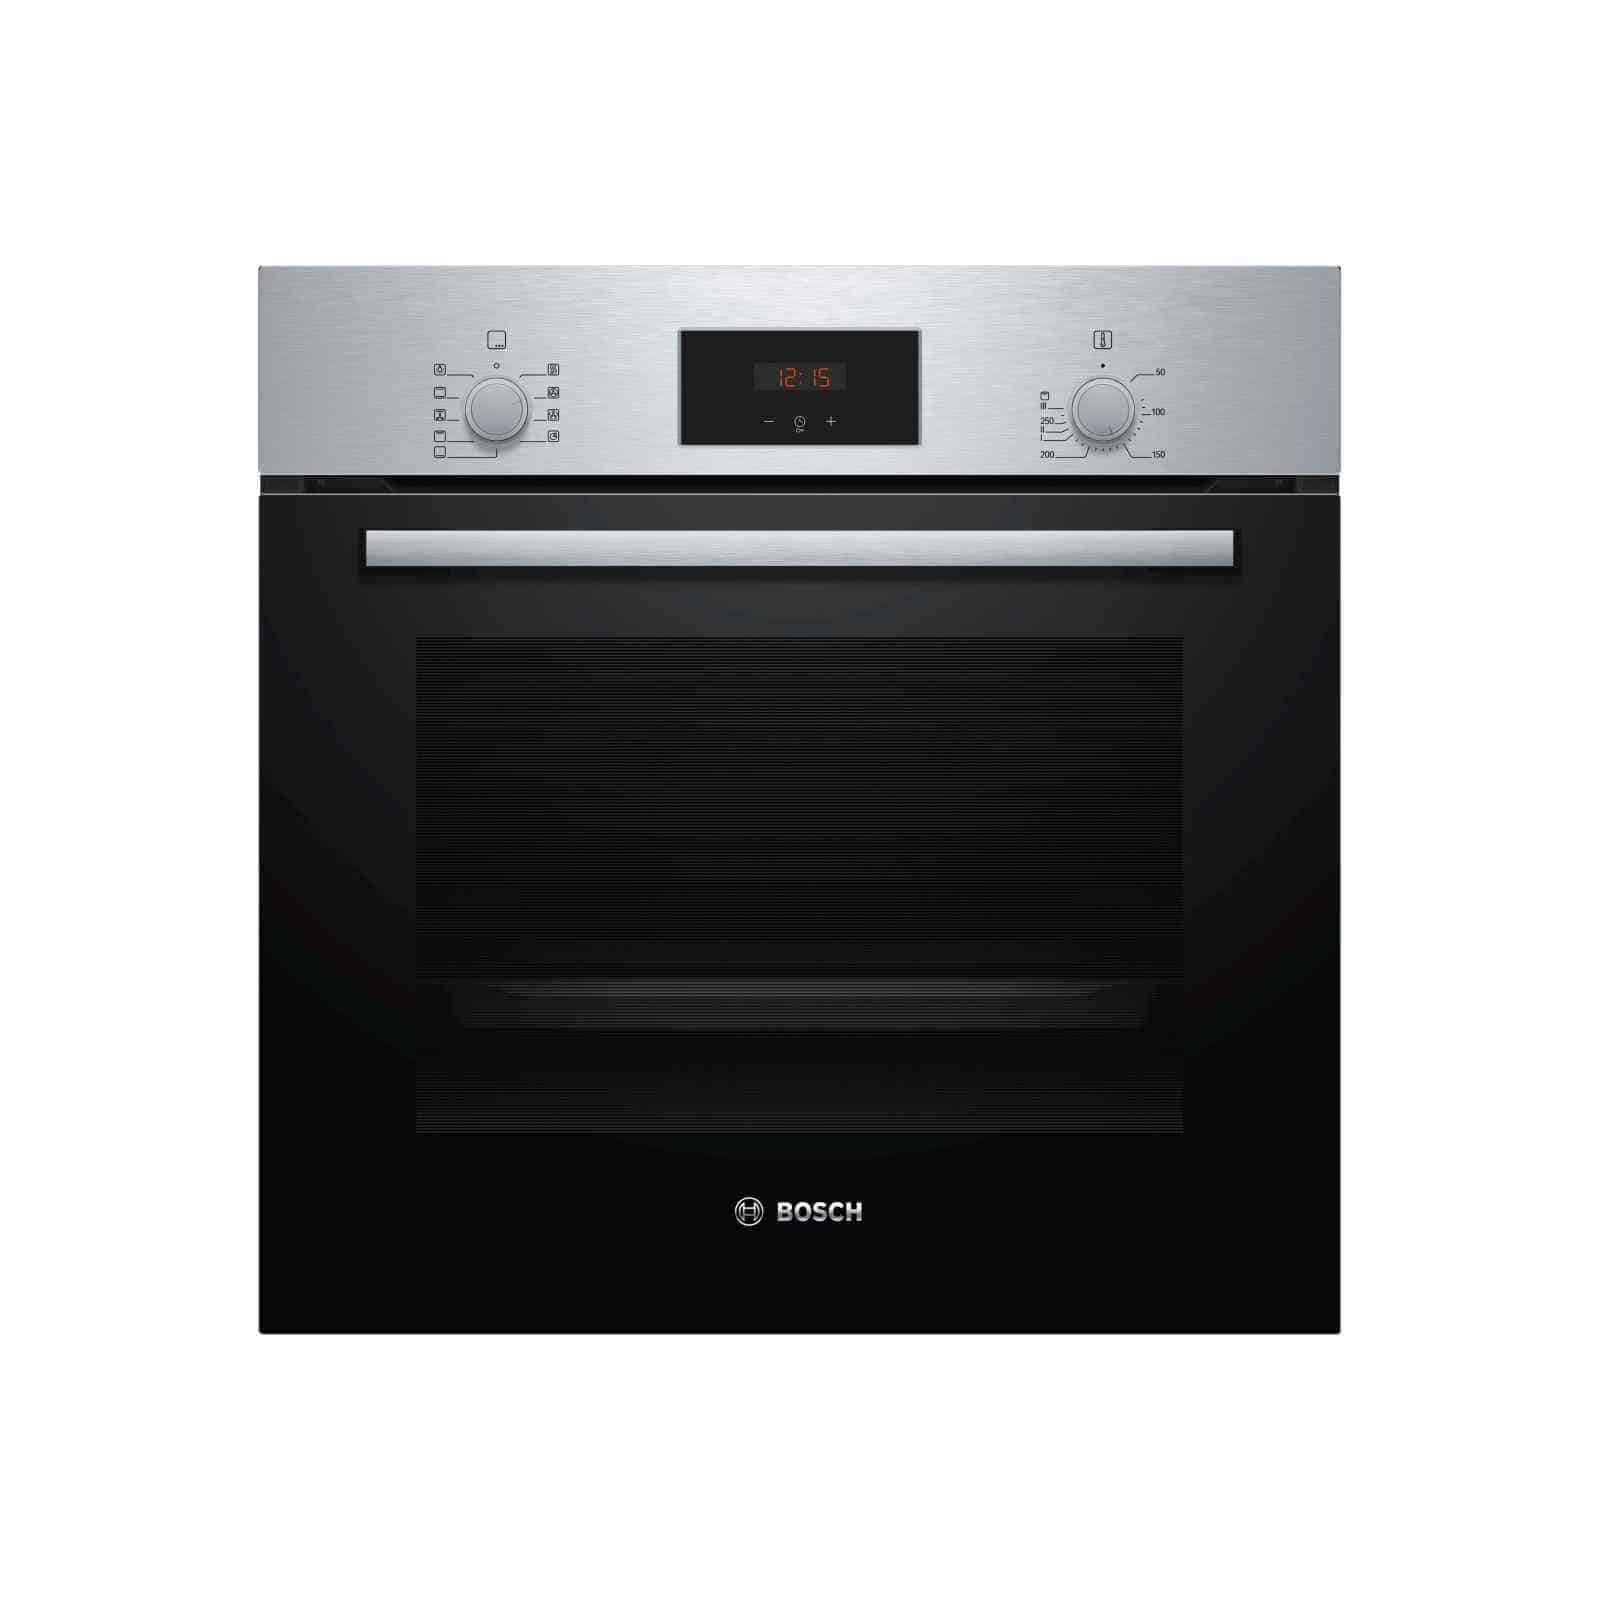 bosch hbf134bs0k built-in single oven (66l) (exclude installation)